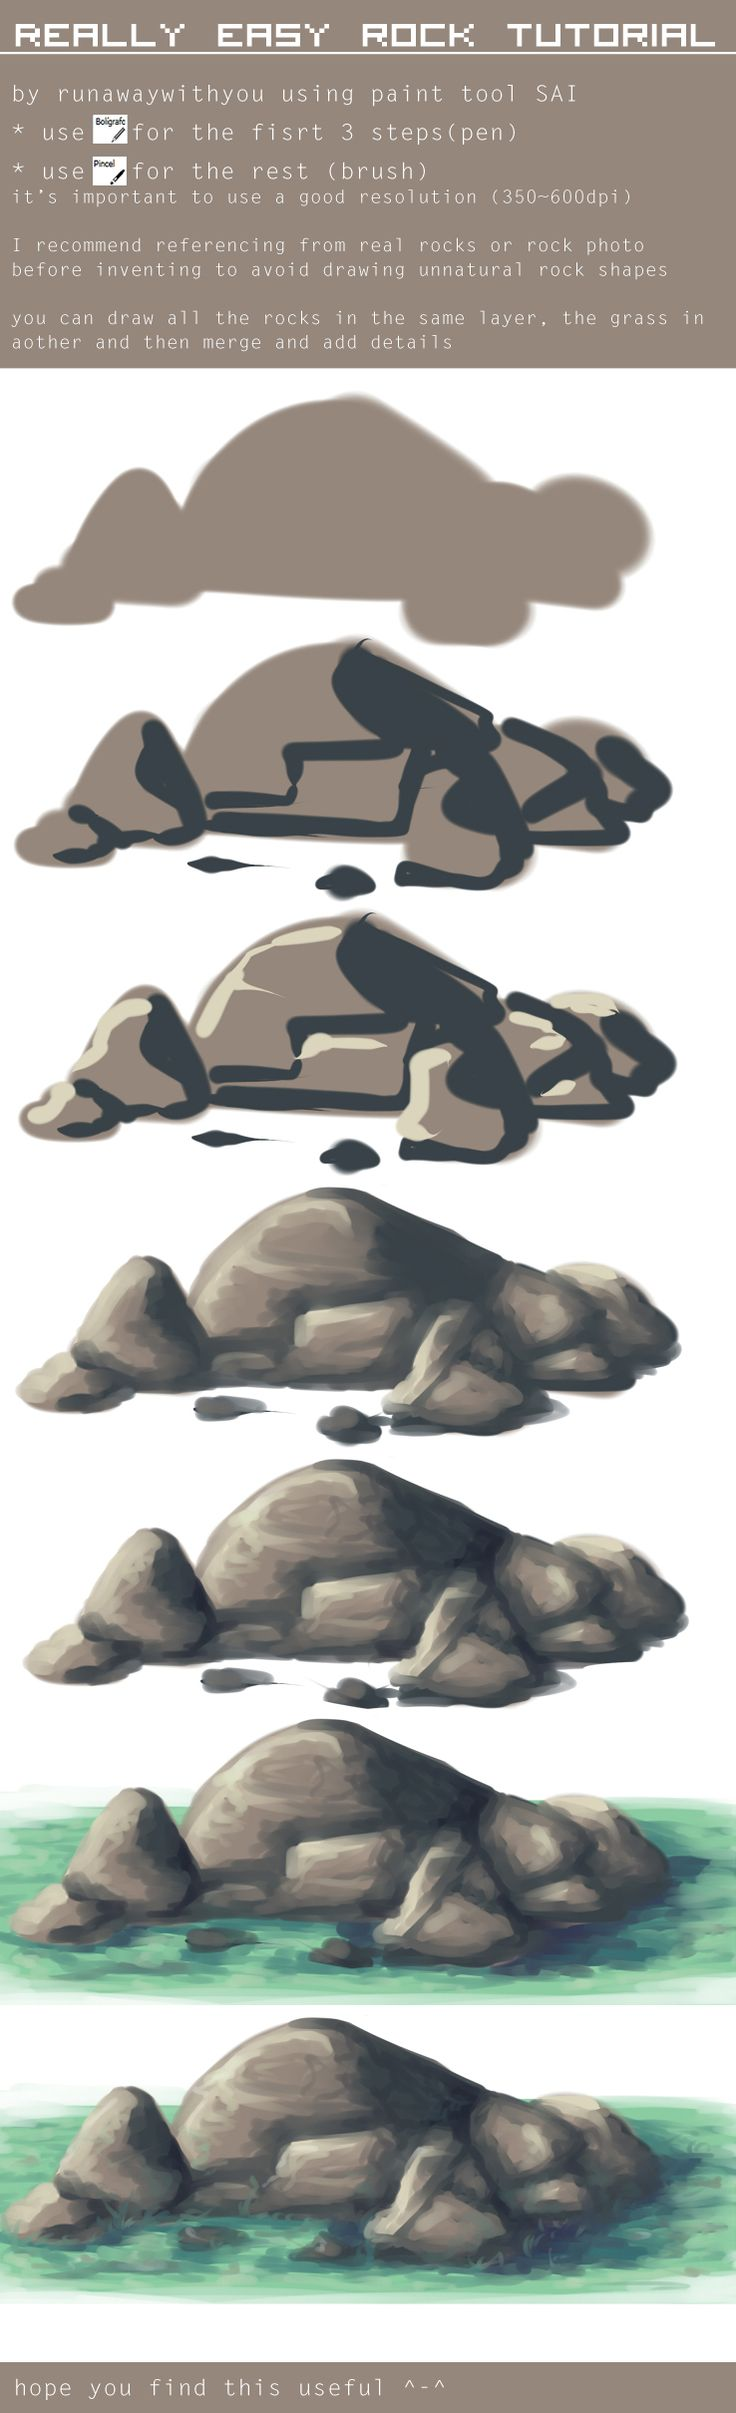 easy tutorial - drawing rocks by runawaywithyou.deviantart.com on @deviantART